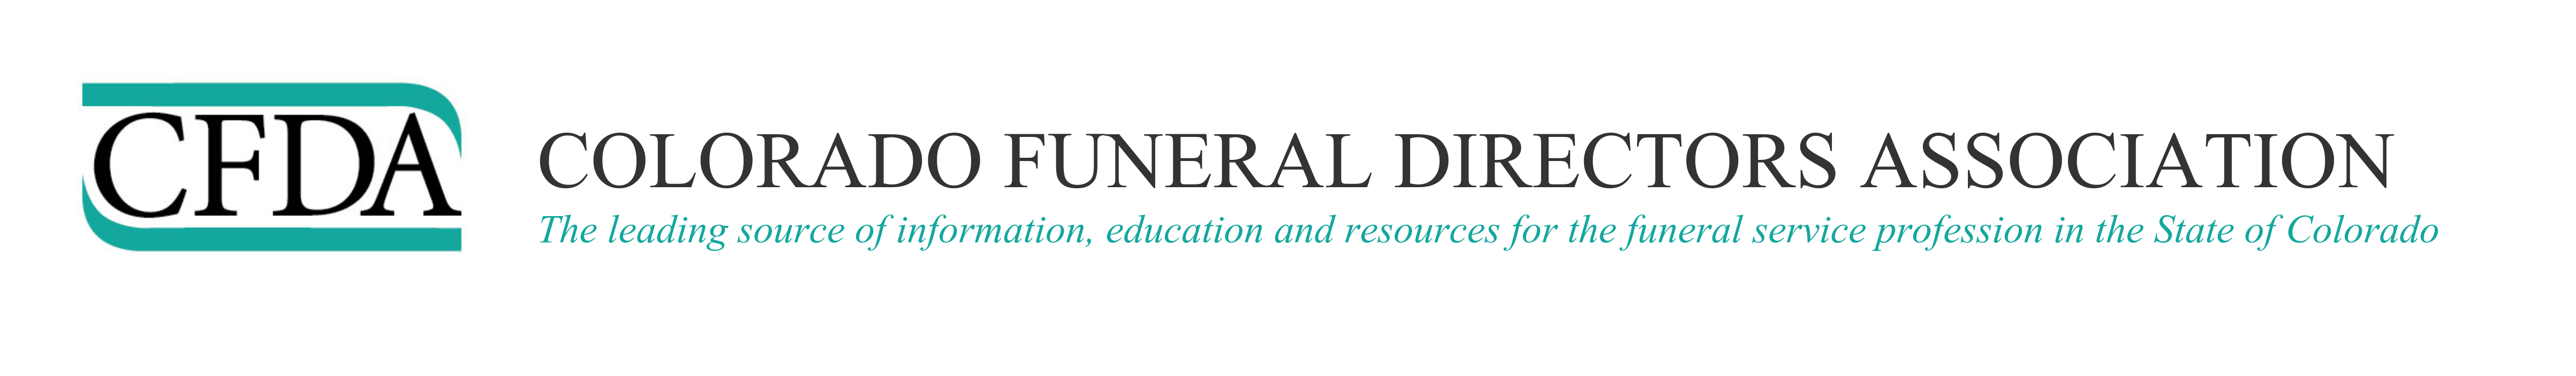 Colorado Funeral Directors Association